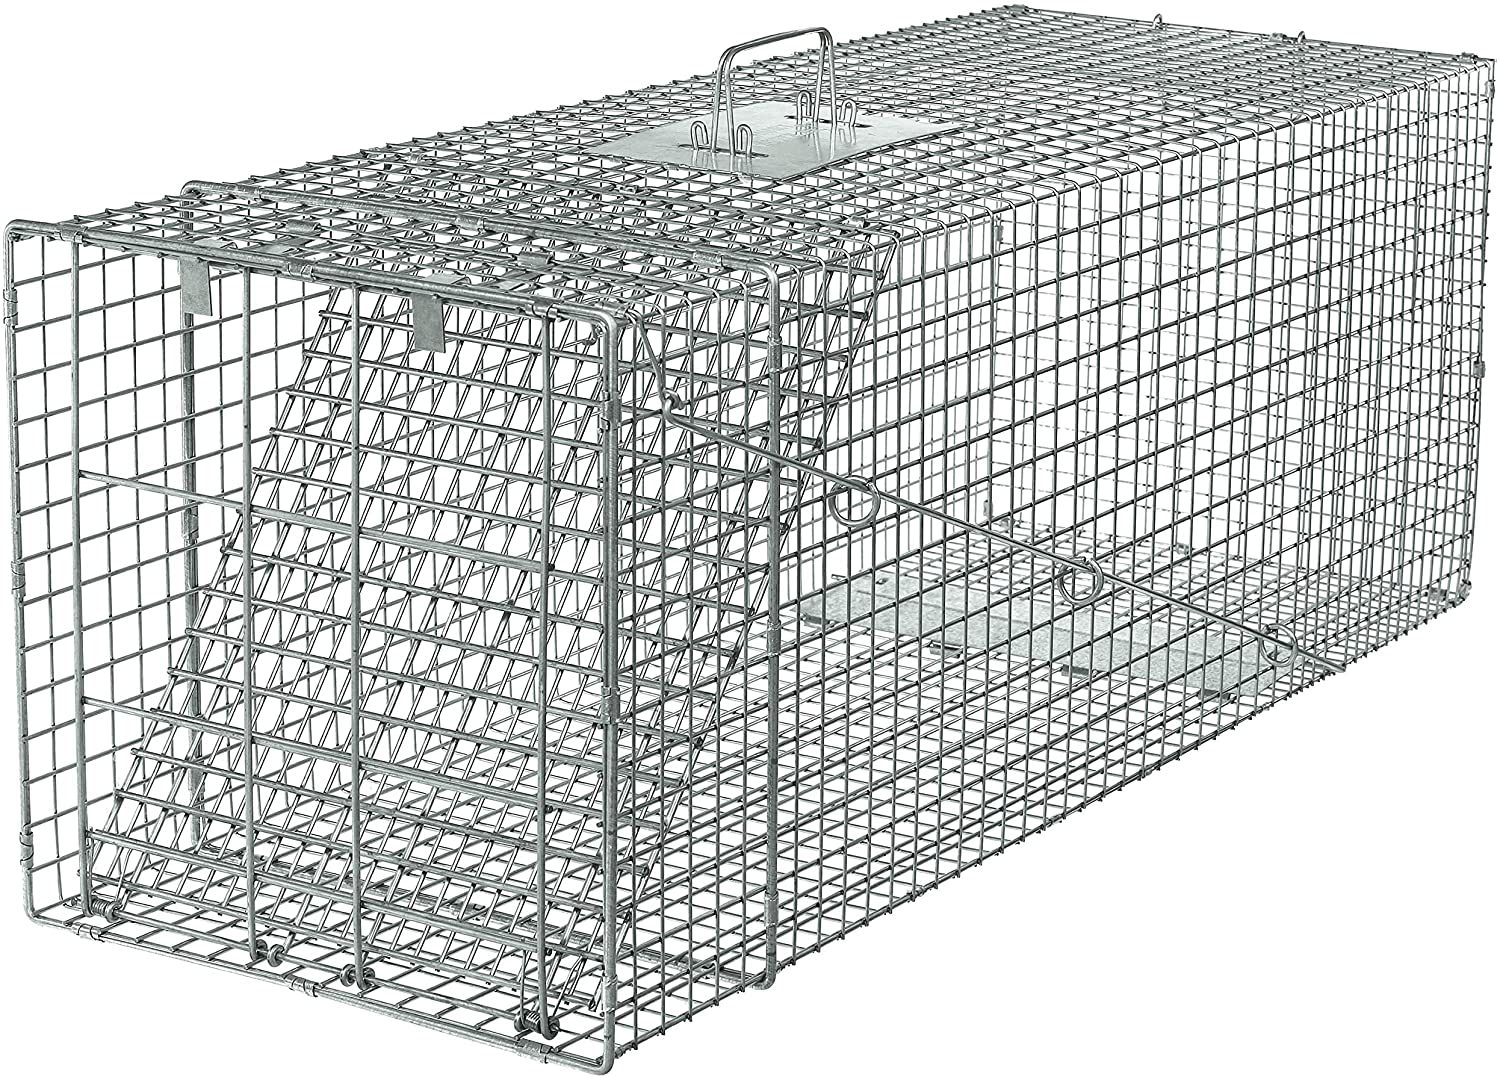 Havahart 1081 Live Animal Professional Style One-Door Large Raccoon, Small Dogs, and Fox Cage Trap-Made in the USA 91t39HILmrLSL1500_